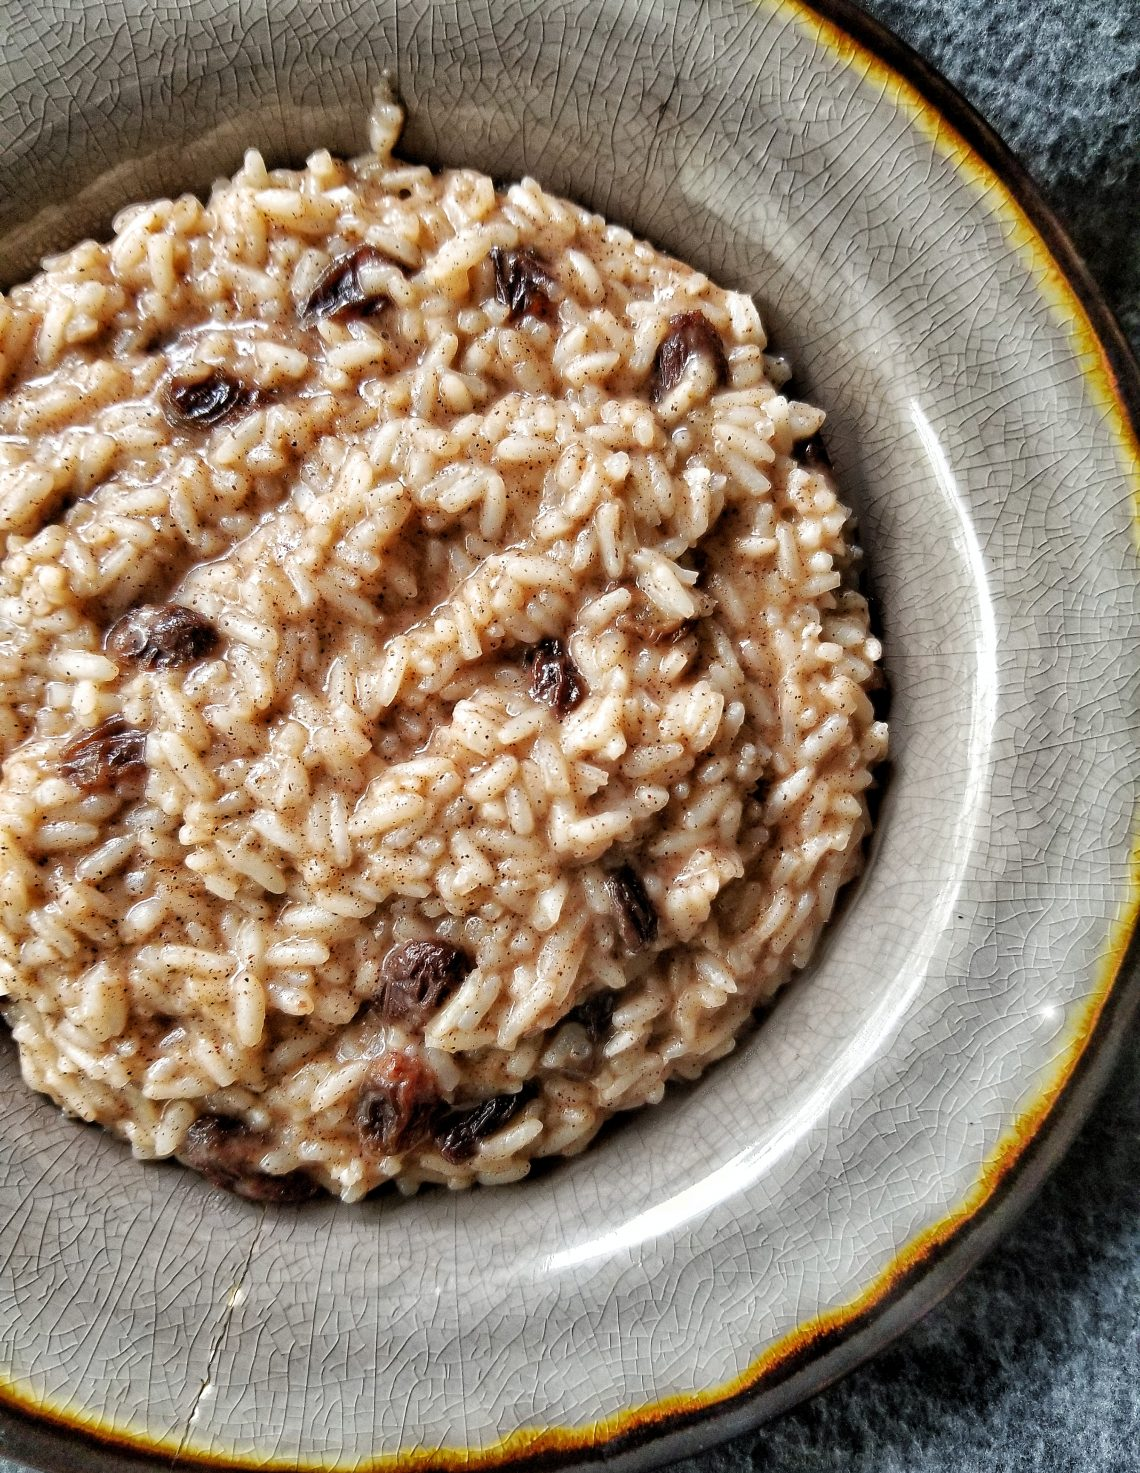 Bowl of warm cinnamon spiced breakfast rice pudding topped with raisins